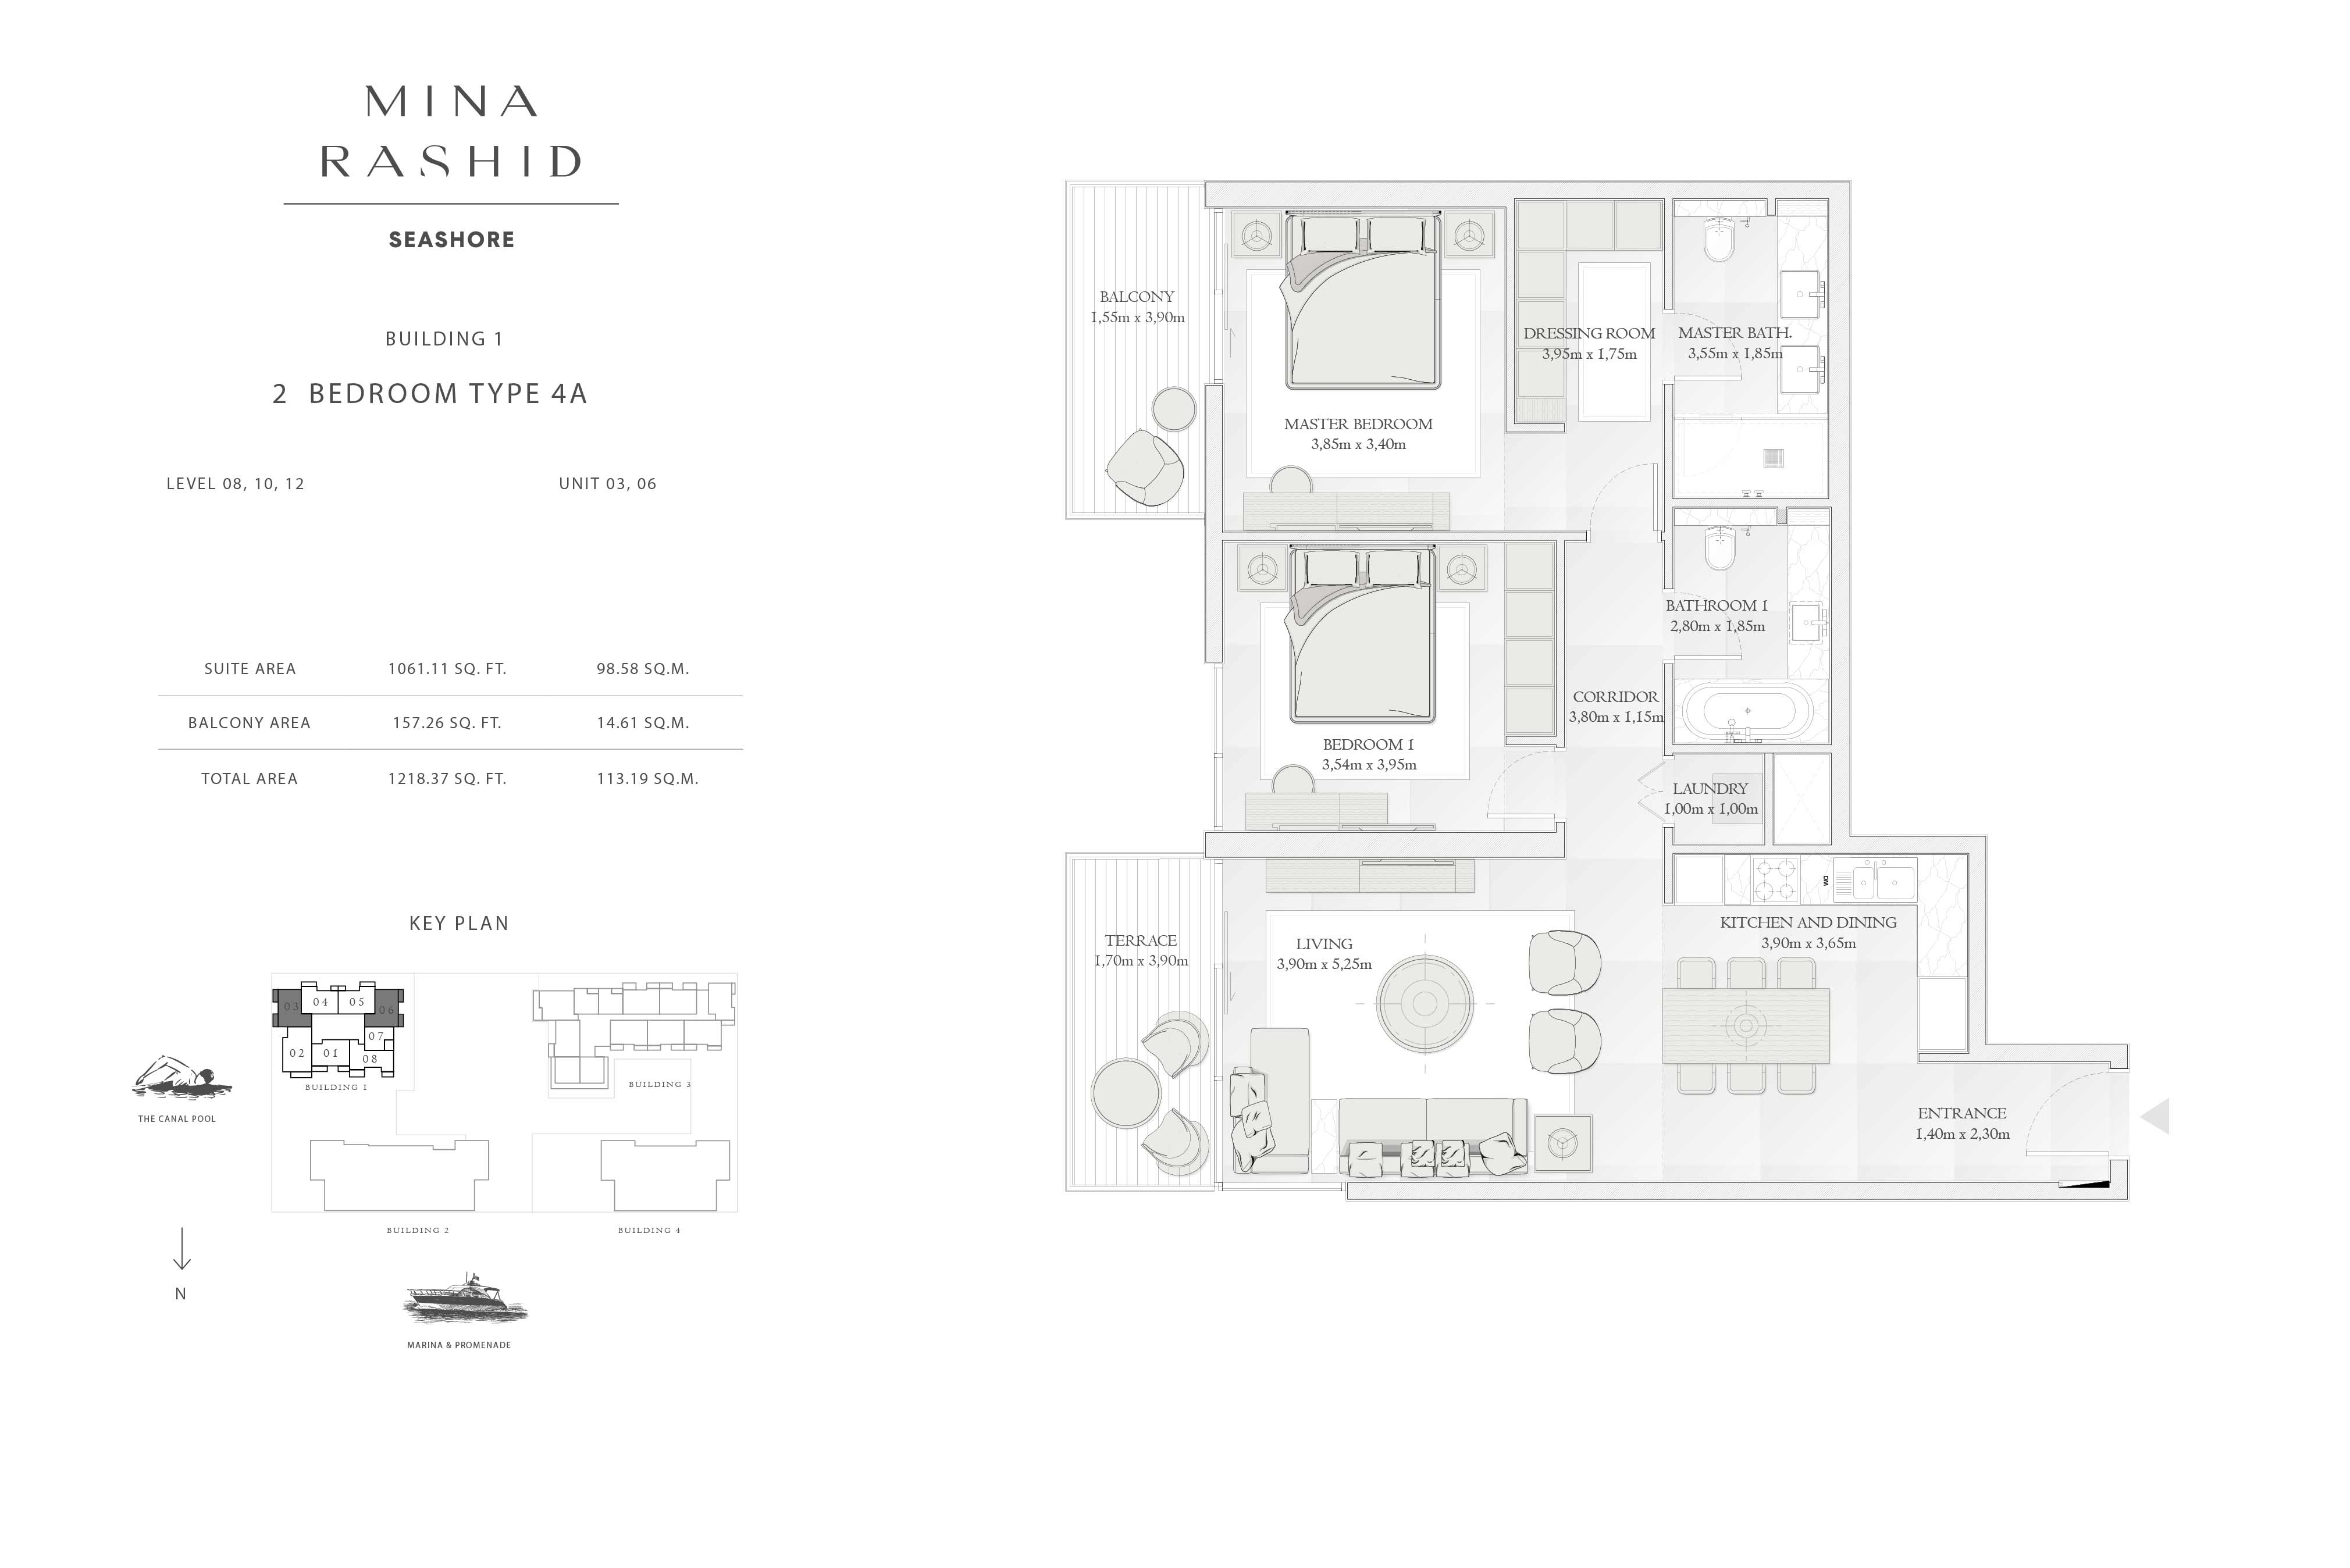 Building-1, 2-Bedroom-Type-4A, Level(8, 10, 12), Size-1218-Sq-Ft